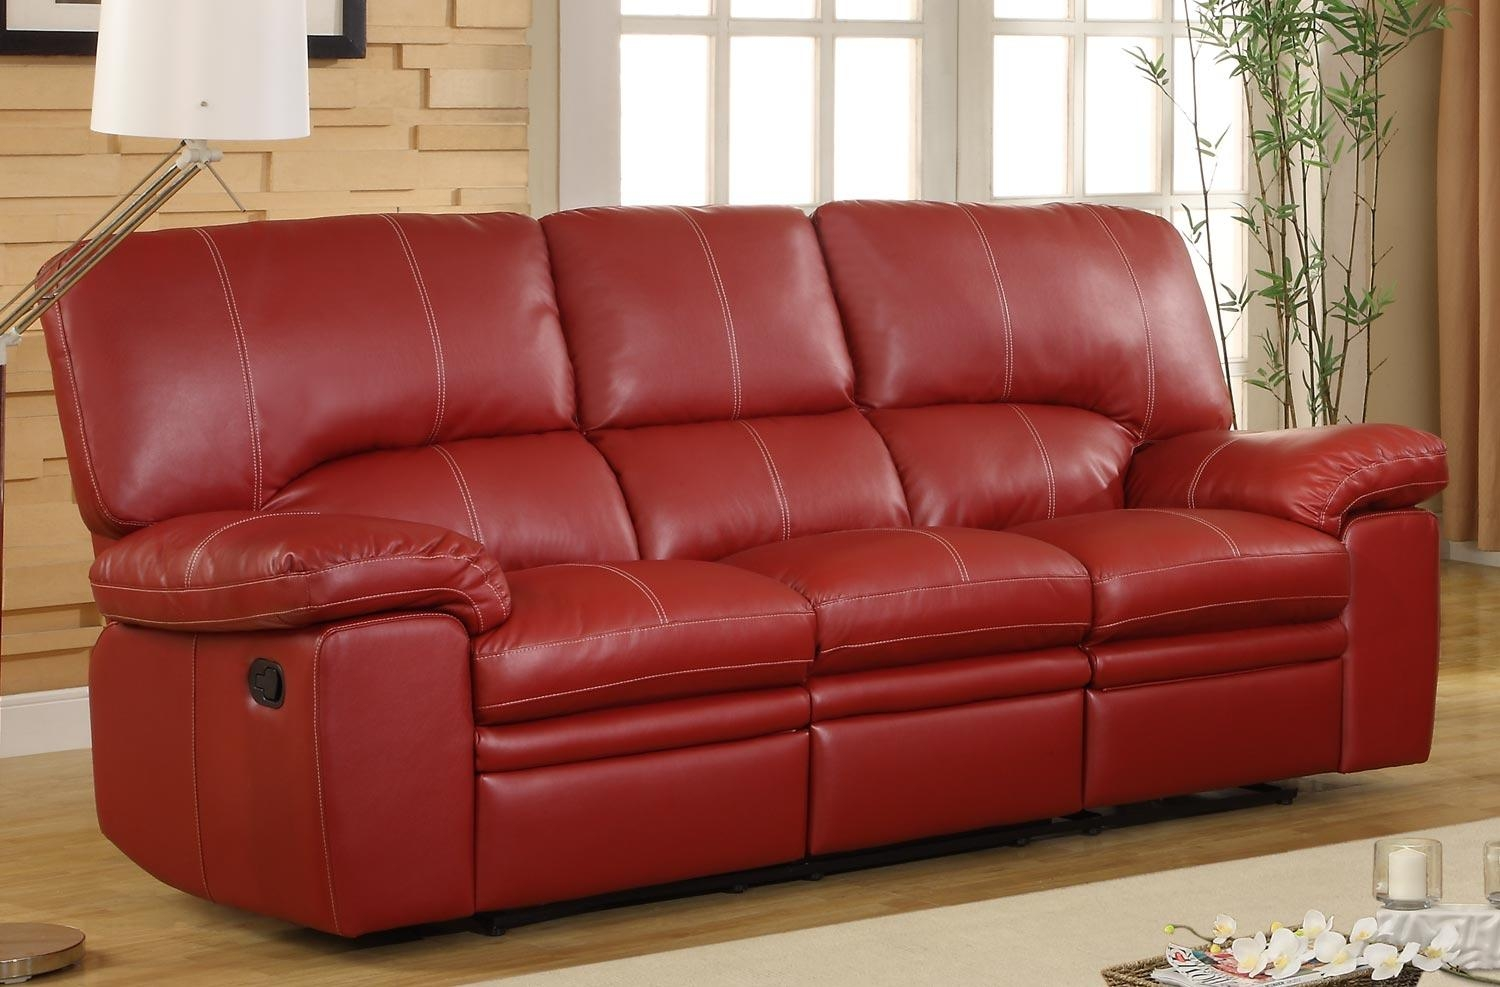 red leather sofas and chairs sofa set dark blue 20 photos ideas